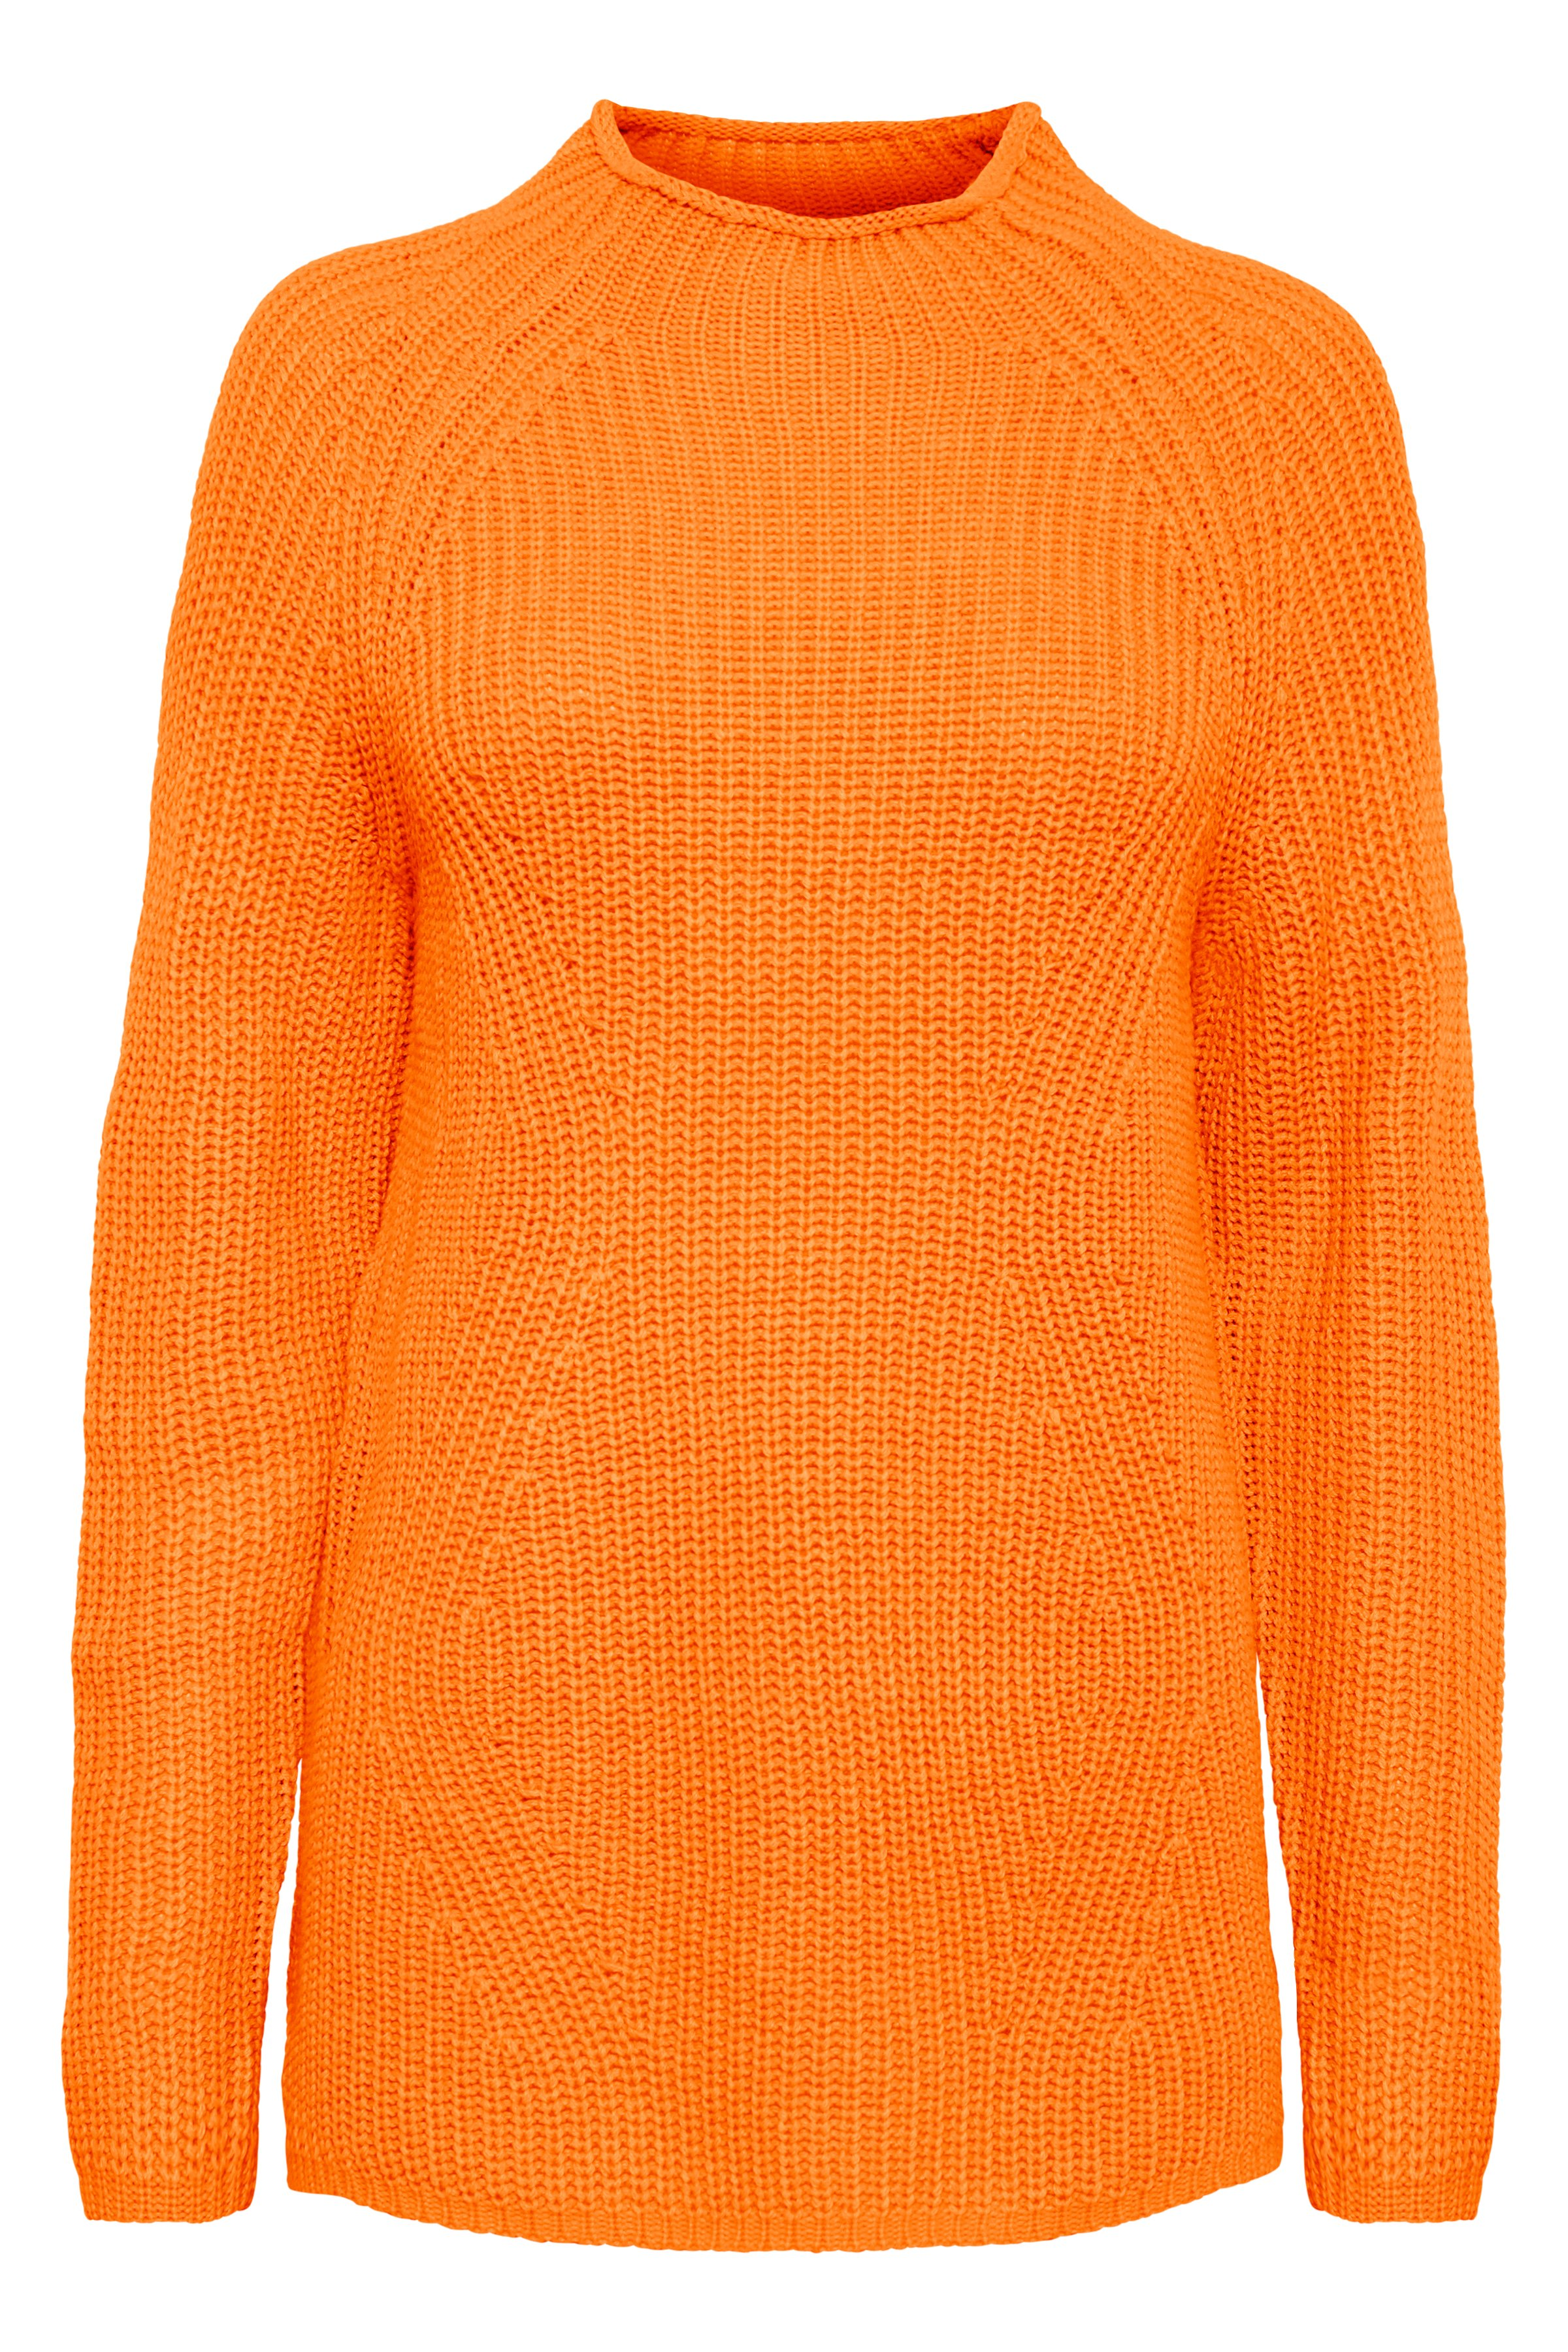 Sun Orange Strikpullover fra b.young – Køb Sun Orange Strikpullover fra str. XS-XXL her